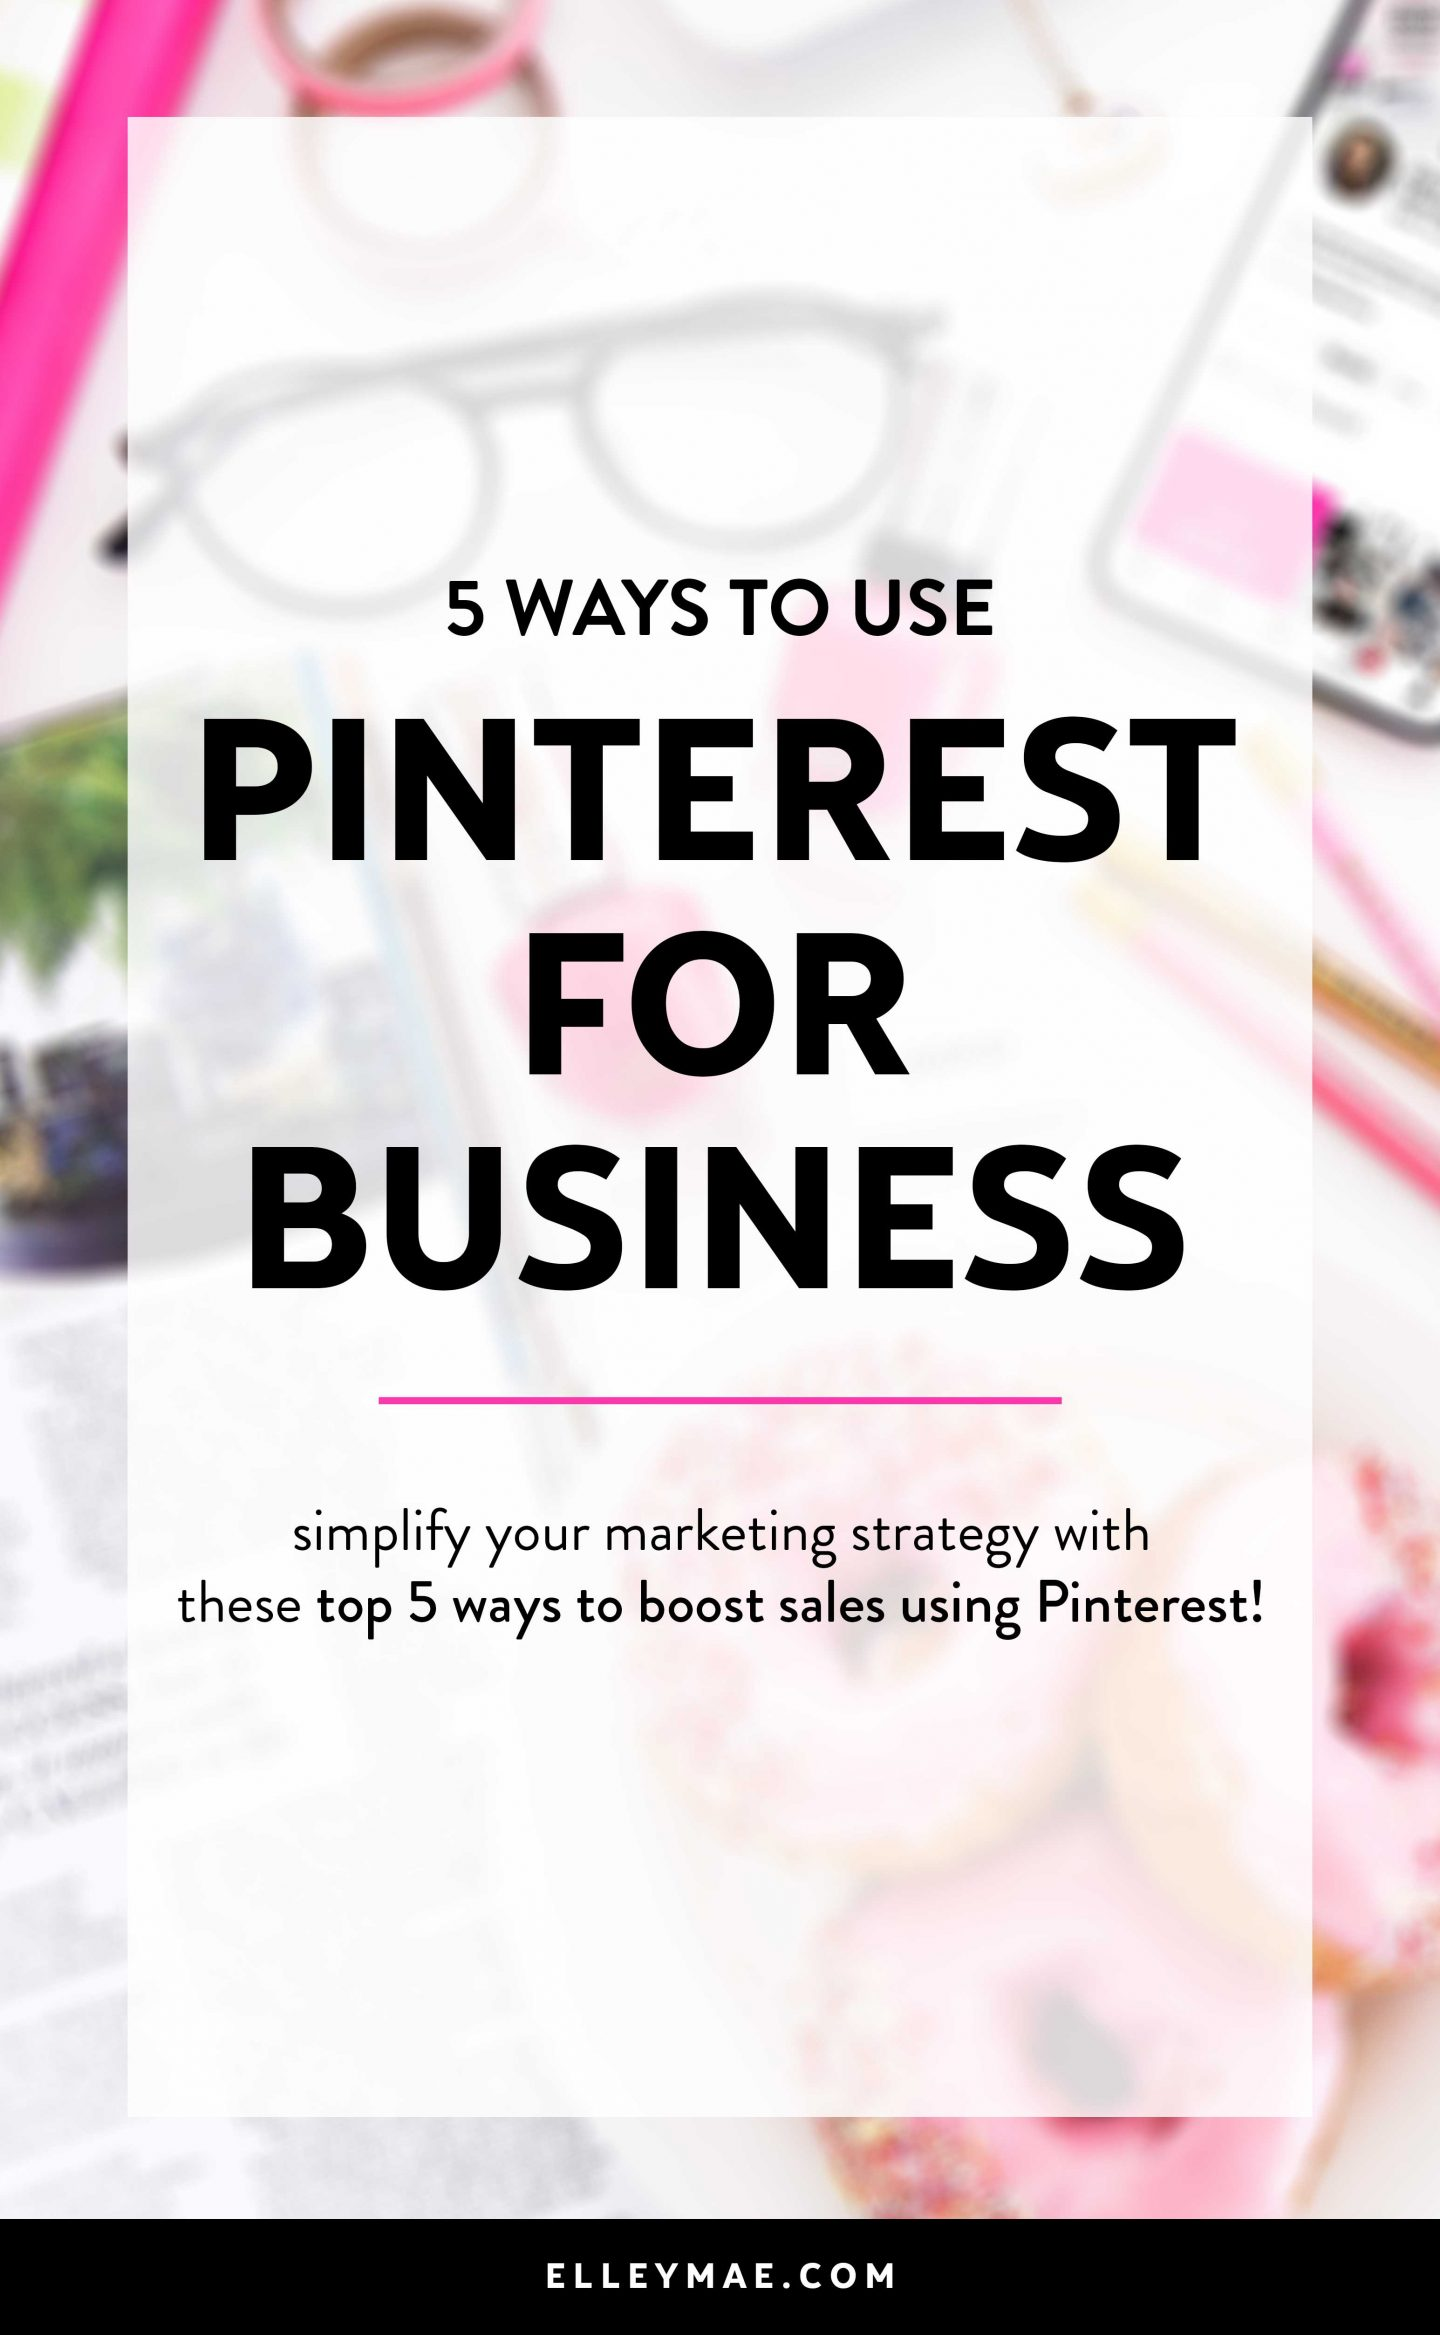 5 Ways To Use Pinterest In Your Business | Using Pinterest for business purposes is one of the smartest things you can do for your social media marketing strategy! Using tools like Tailwind for Pinterest scheduling, joining group boards, creating Pinterest graphic templates & all that good stuff really *isn't* as hard as you think! Learn more at ElleyMae.com | Pinterest for Business, Business Profile, Marketing Strategy, Marketing Ideas, Business Ideas, Social Media Marketing, Social Media for Business #socialmediamanager #socialmediamarketing #pinterestforbusiness